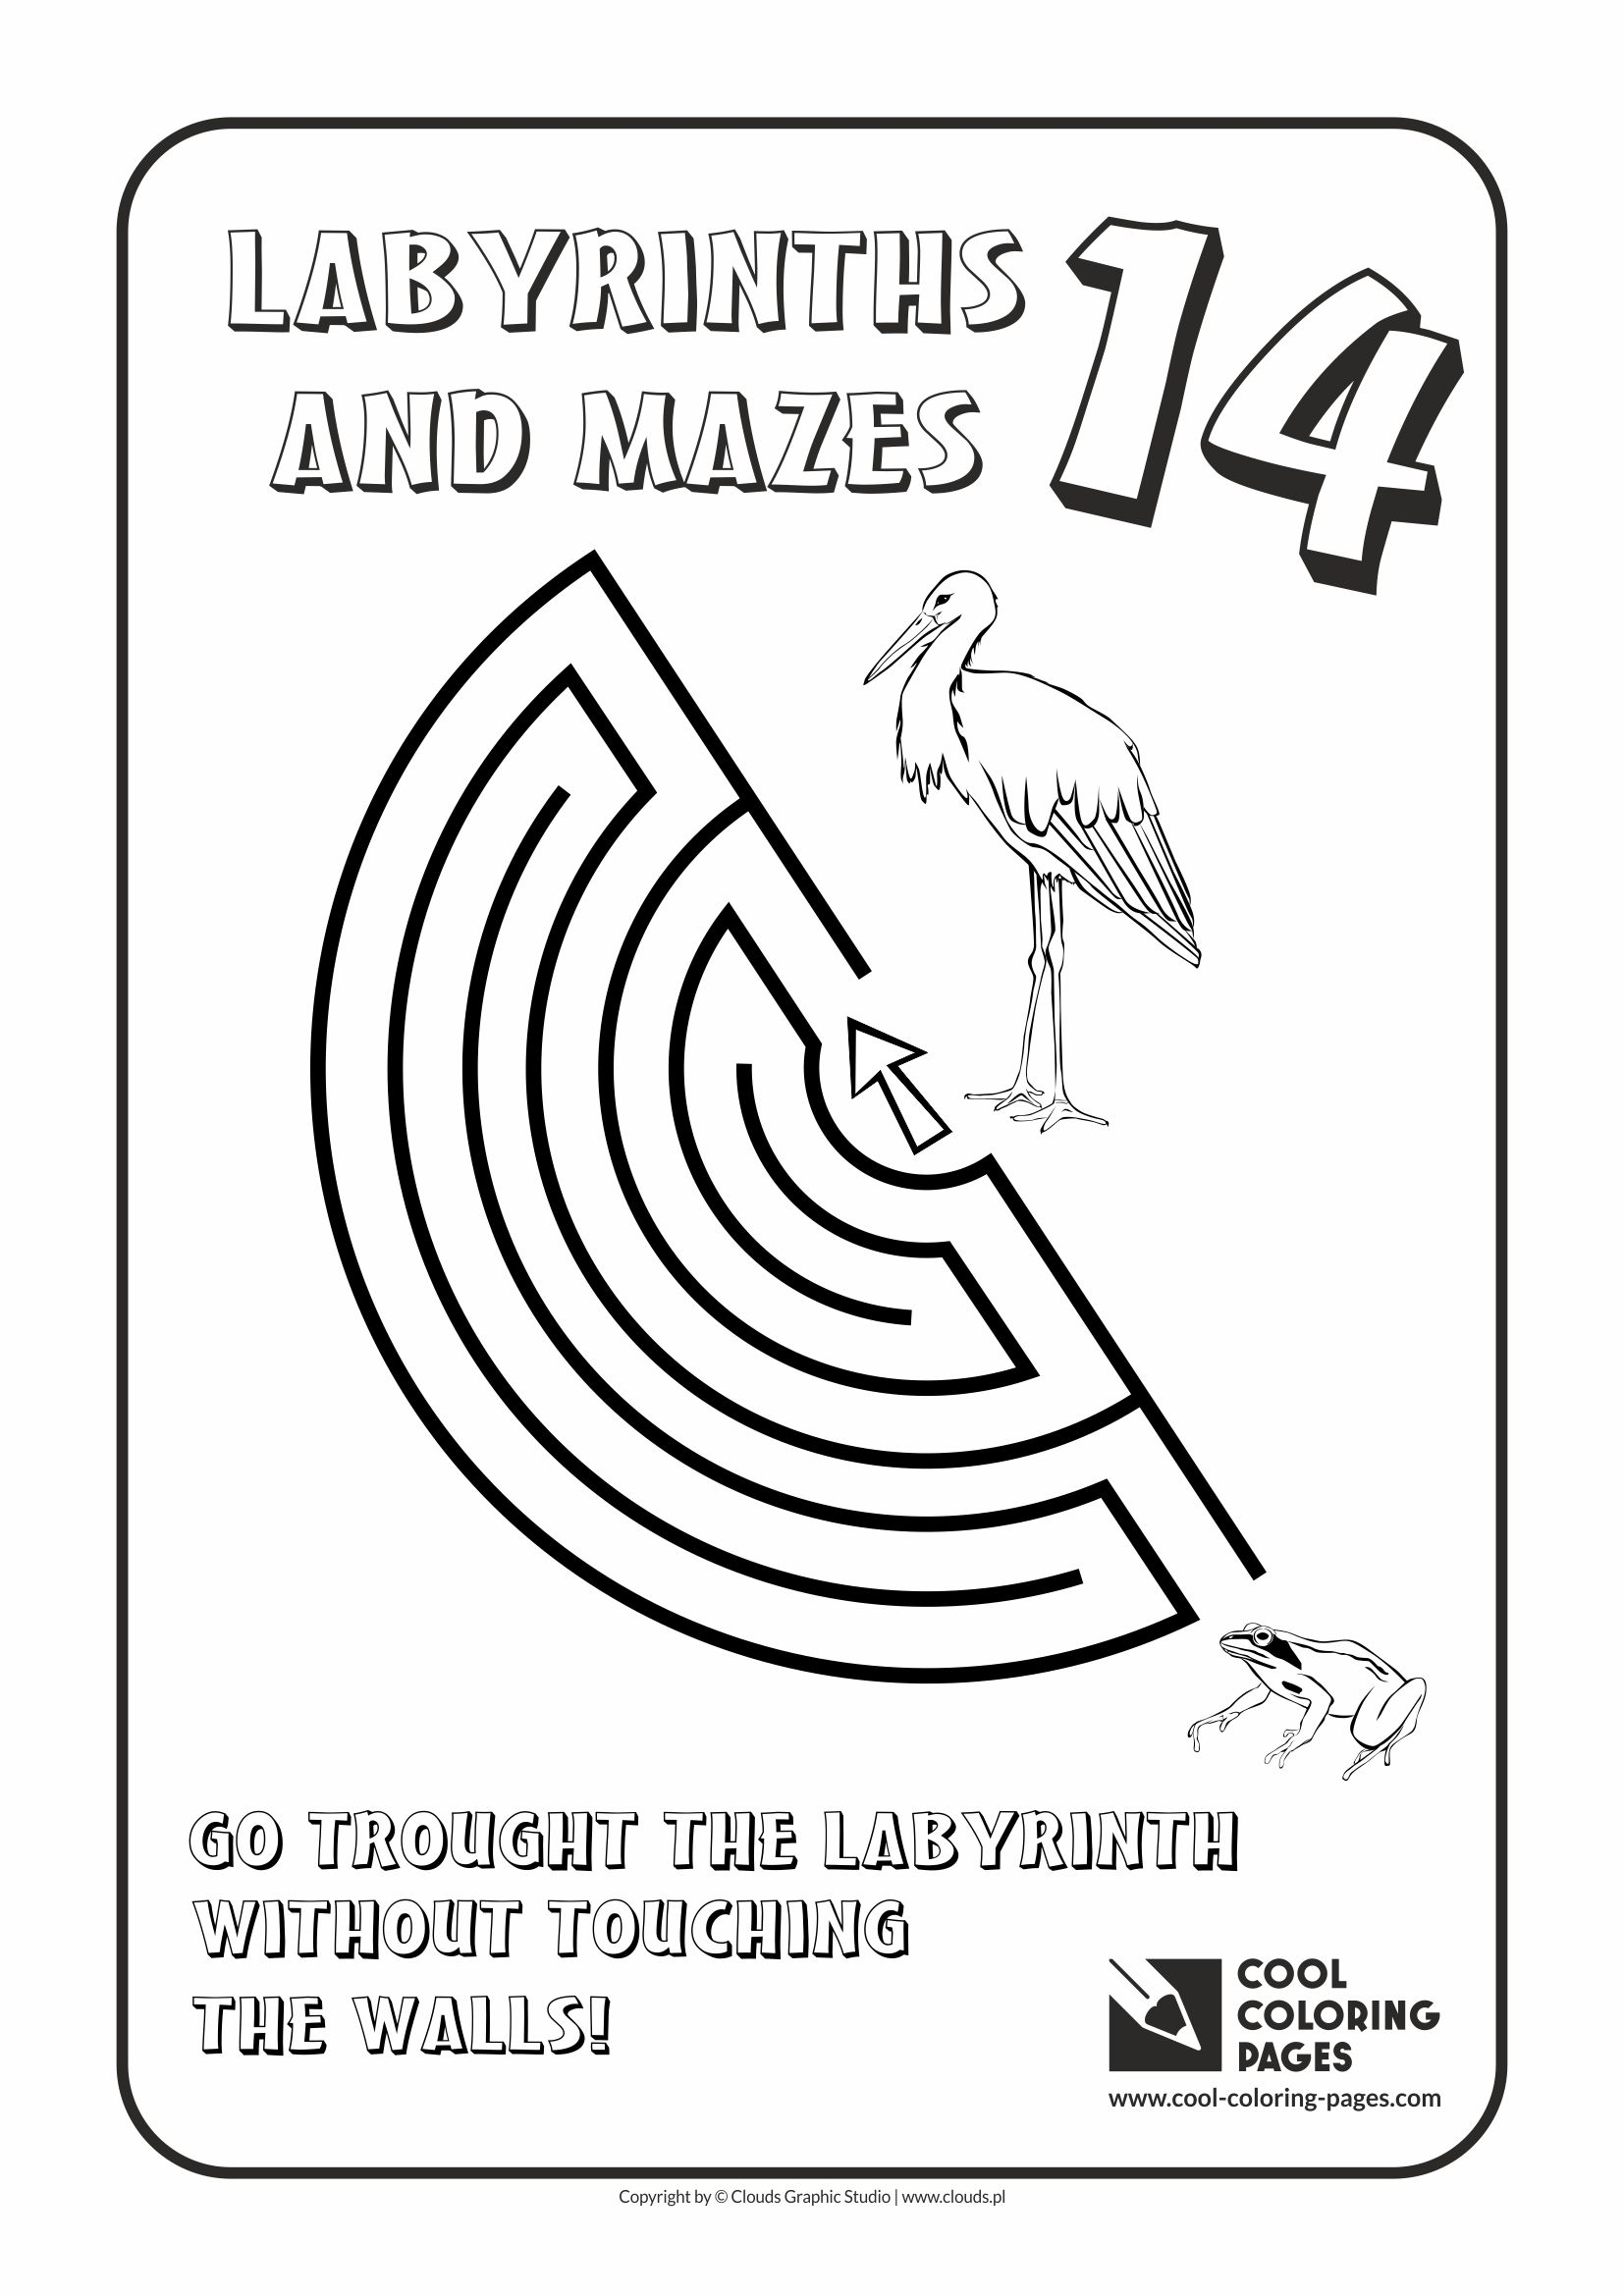 Cool Coloring Pages - Labyrinths and mazes / Maze no 14